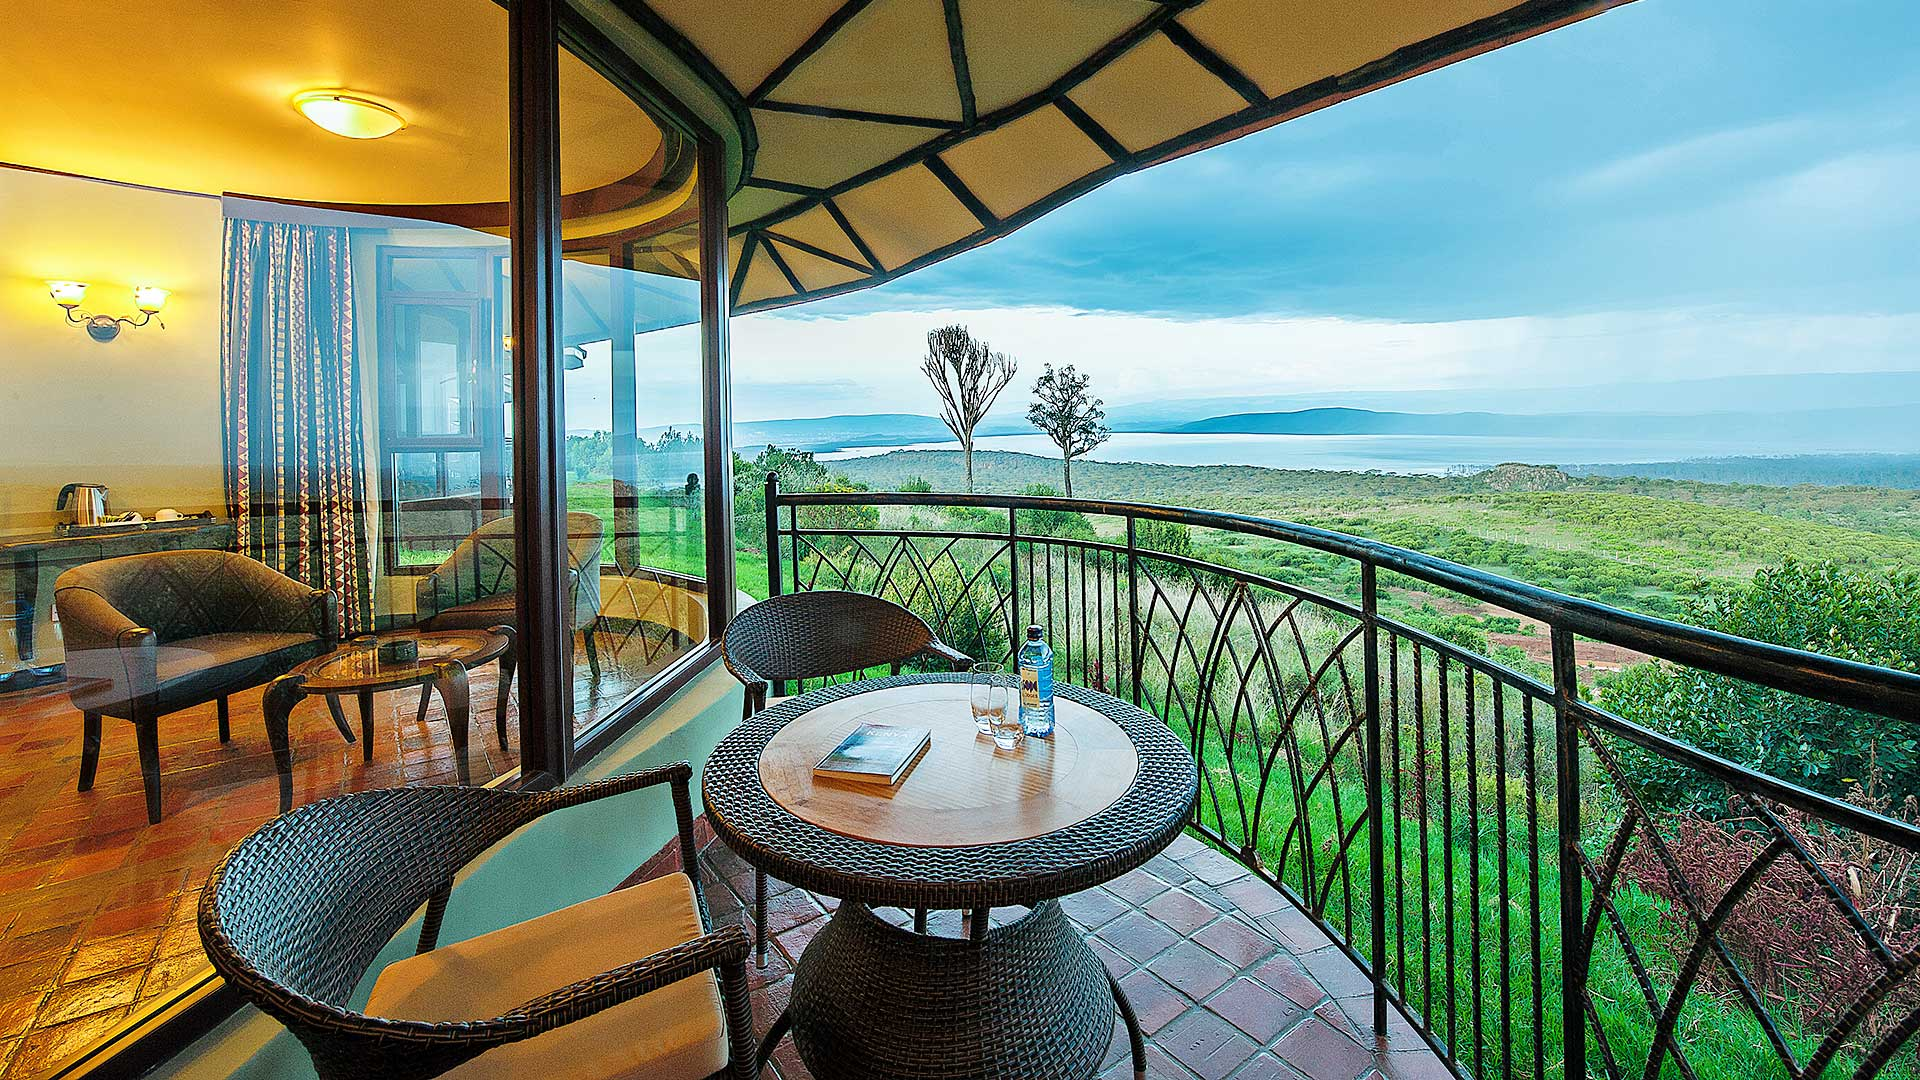 La Sopa Lodge au Lac Nakuru